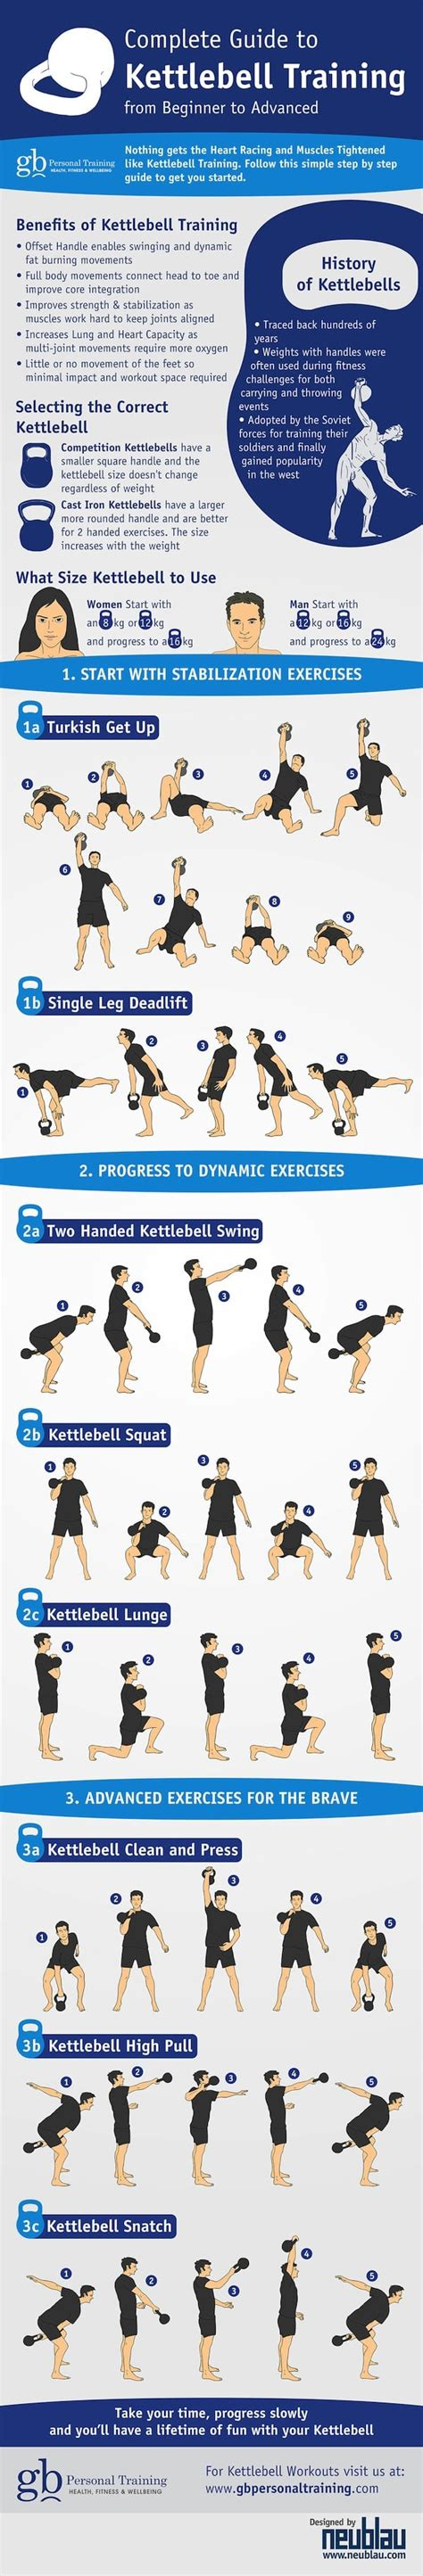 kettlebell training workouts guide infographic exercise exercises fitness complete weight workout beginner beginners body kettle benefits kettlebells crossfit trainer greg